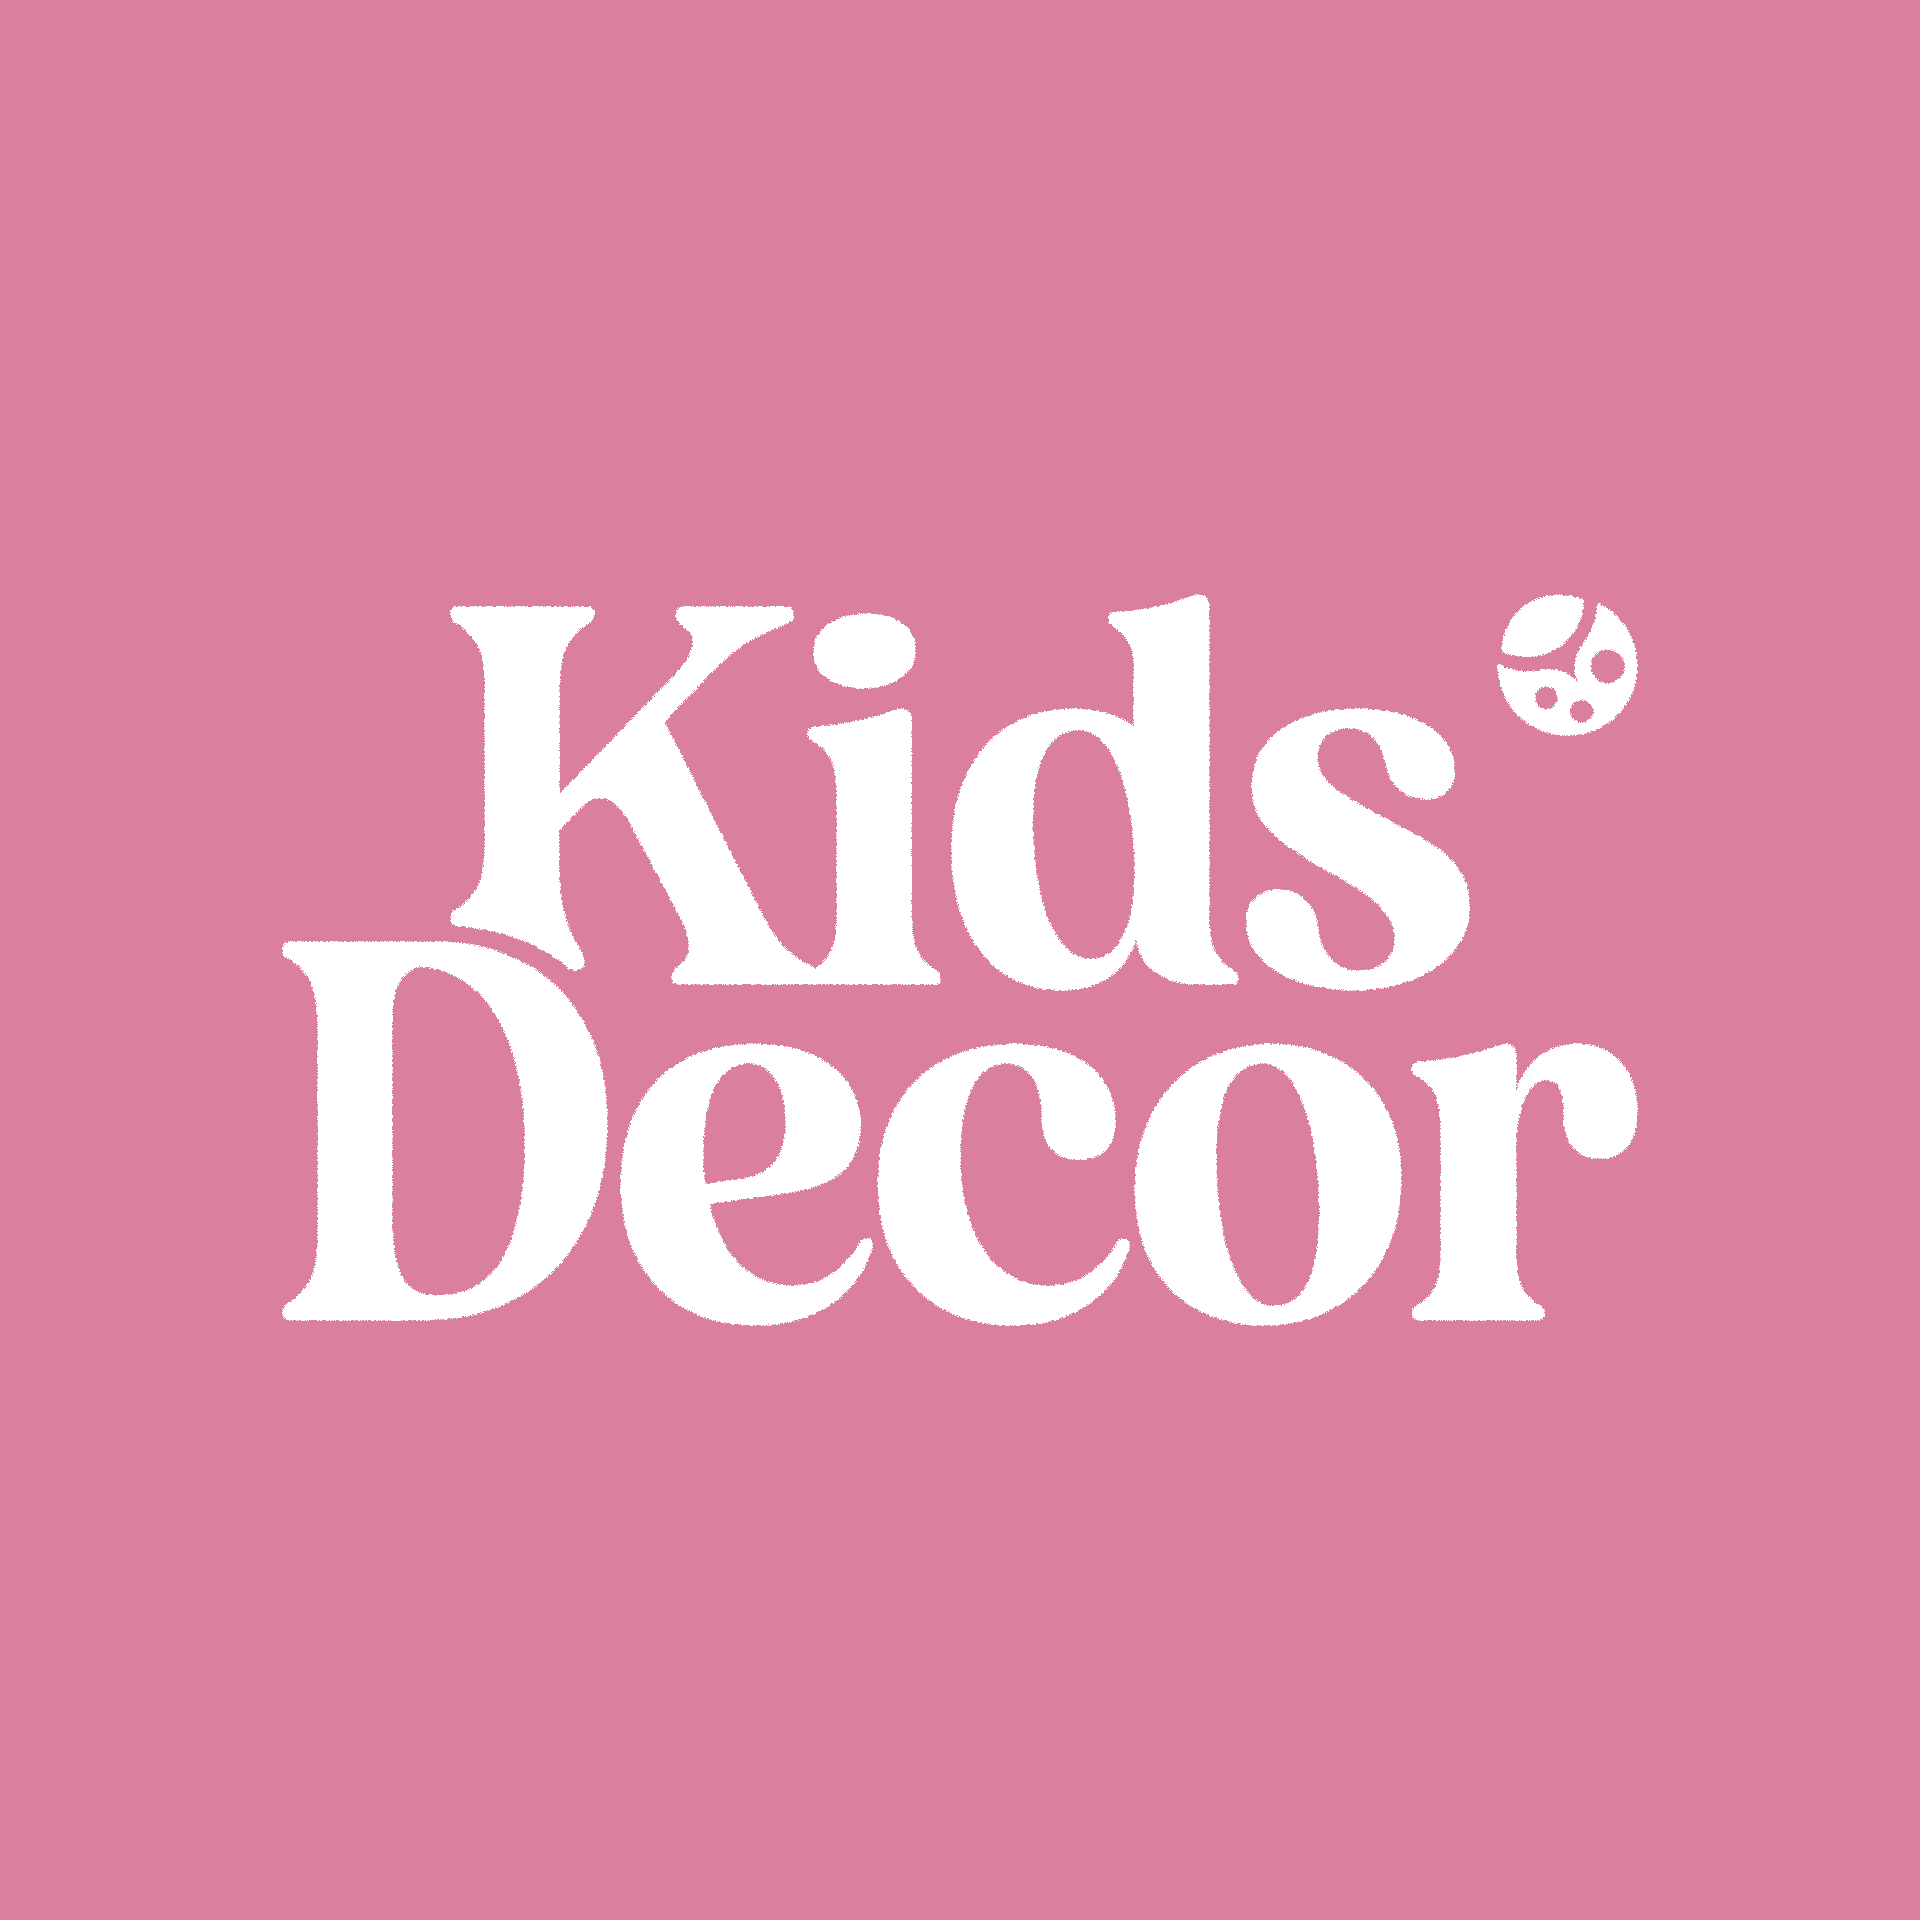 Kids Decor